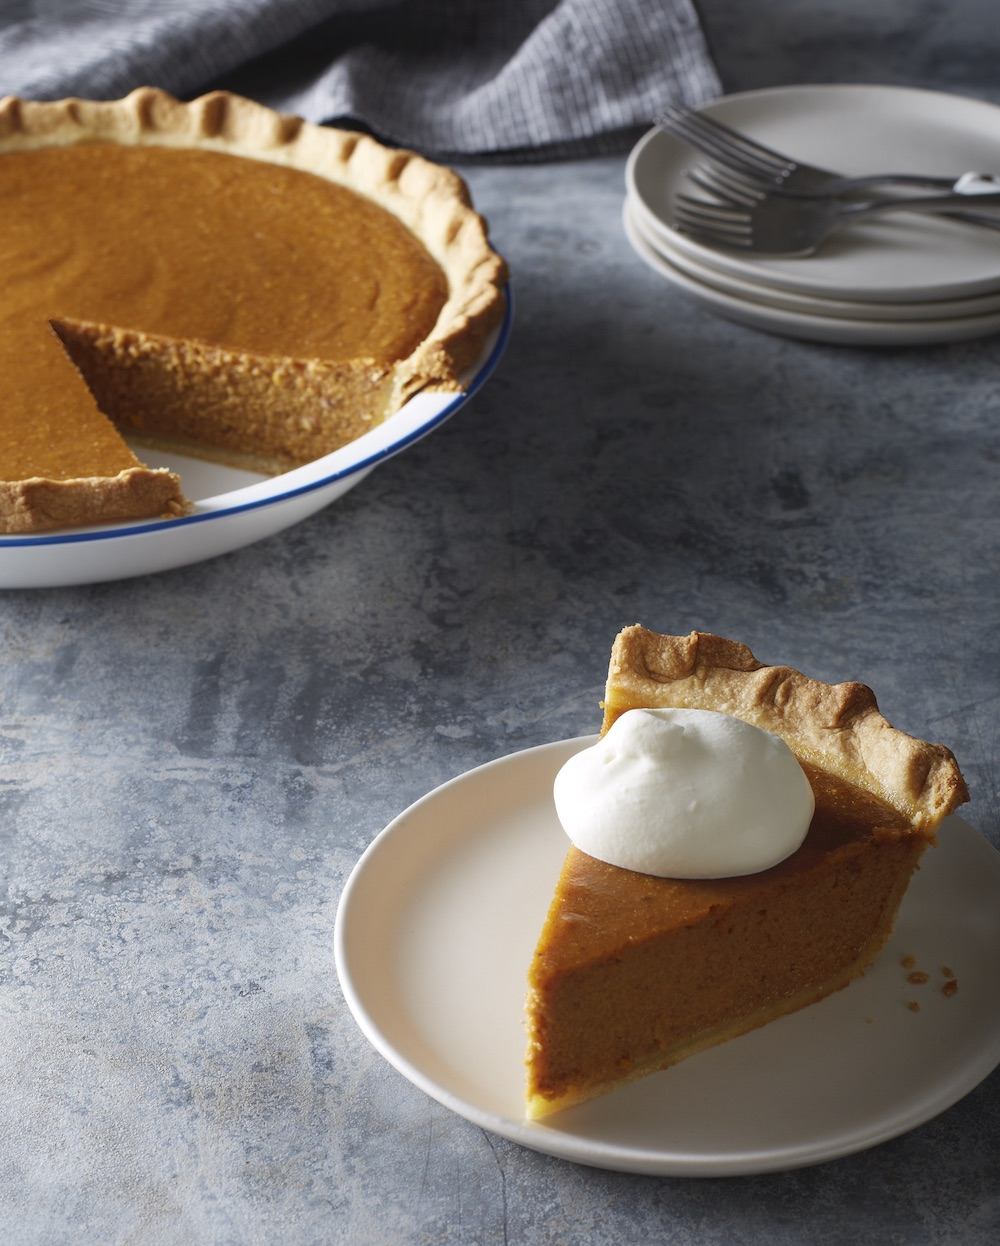 Best holiday pie recipes: Perfect Sweet Potato Pie | Stacie Billis